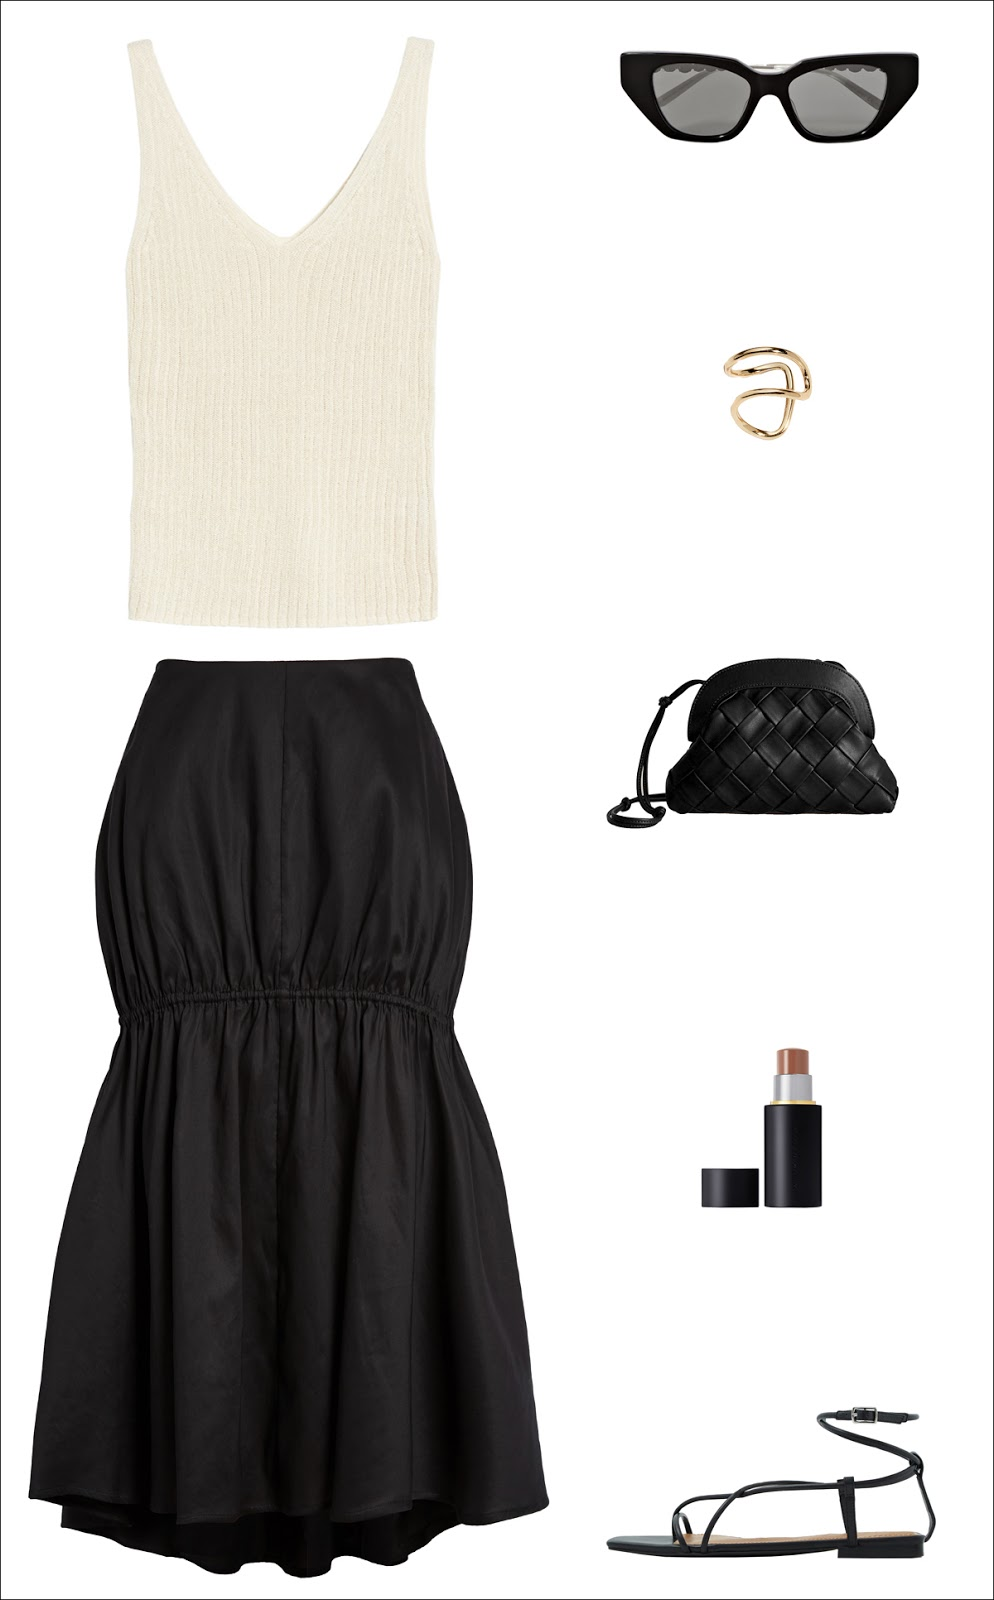 Minimalist Date / Night Out Outfit Idea for Spring and Summer — Beige Tank Top, Cat-Eye Sunglasses, Gold Earring, Toteme Midi Skirt, Woven Braided Bag, Contour Stick, and Black Strappy Flat Sandals